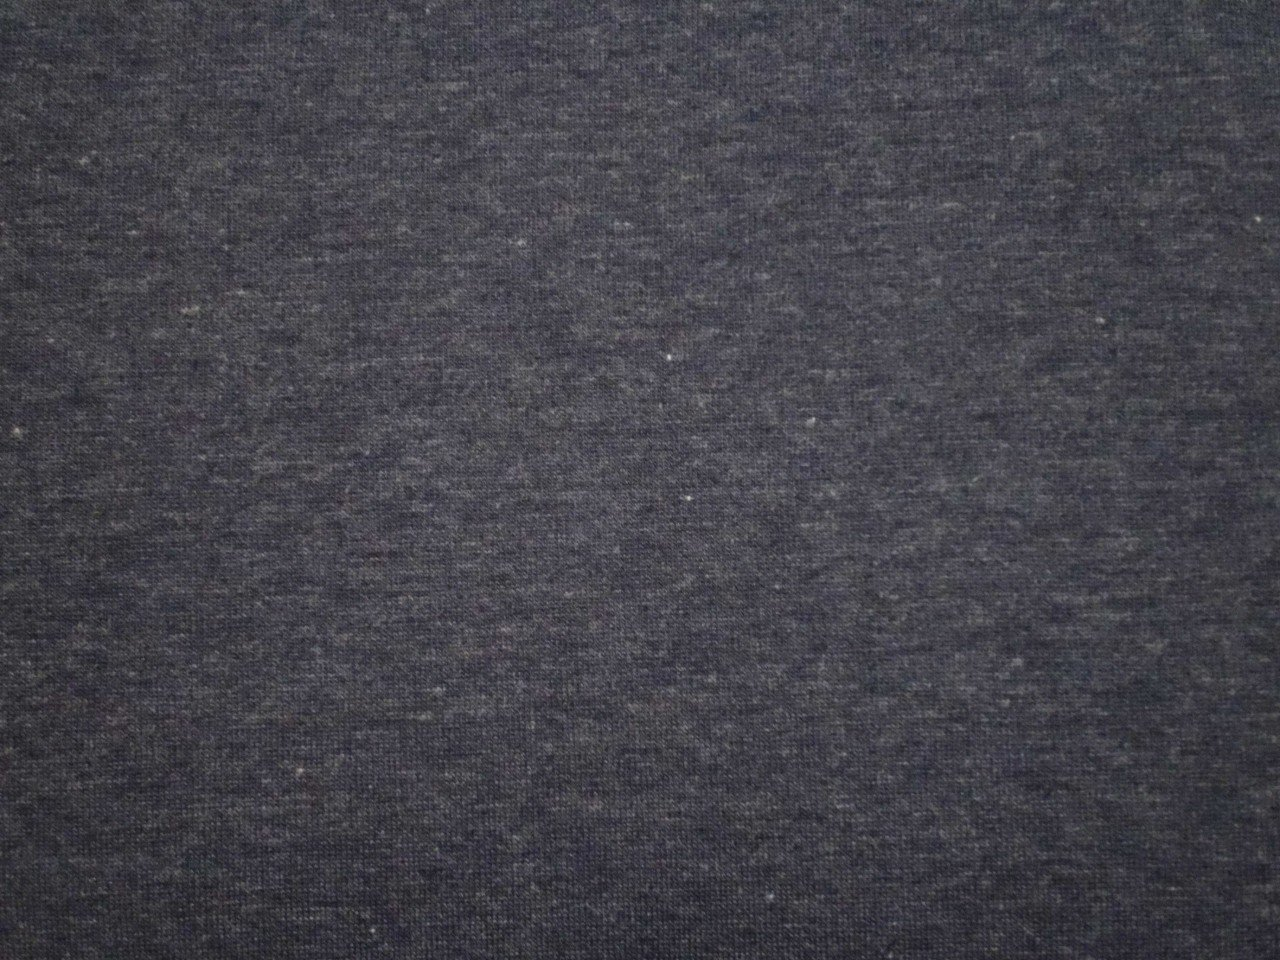 Rayon & Spandex Jersey Knit in Navy Heather